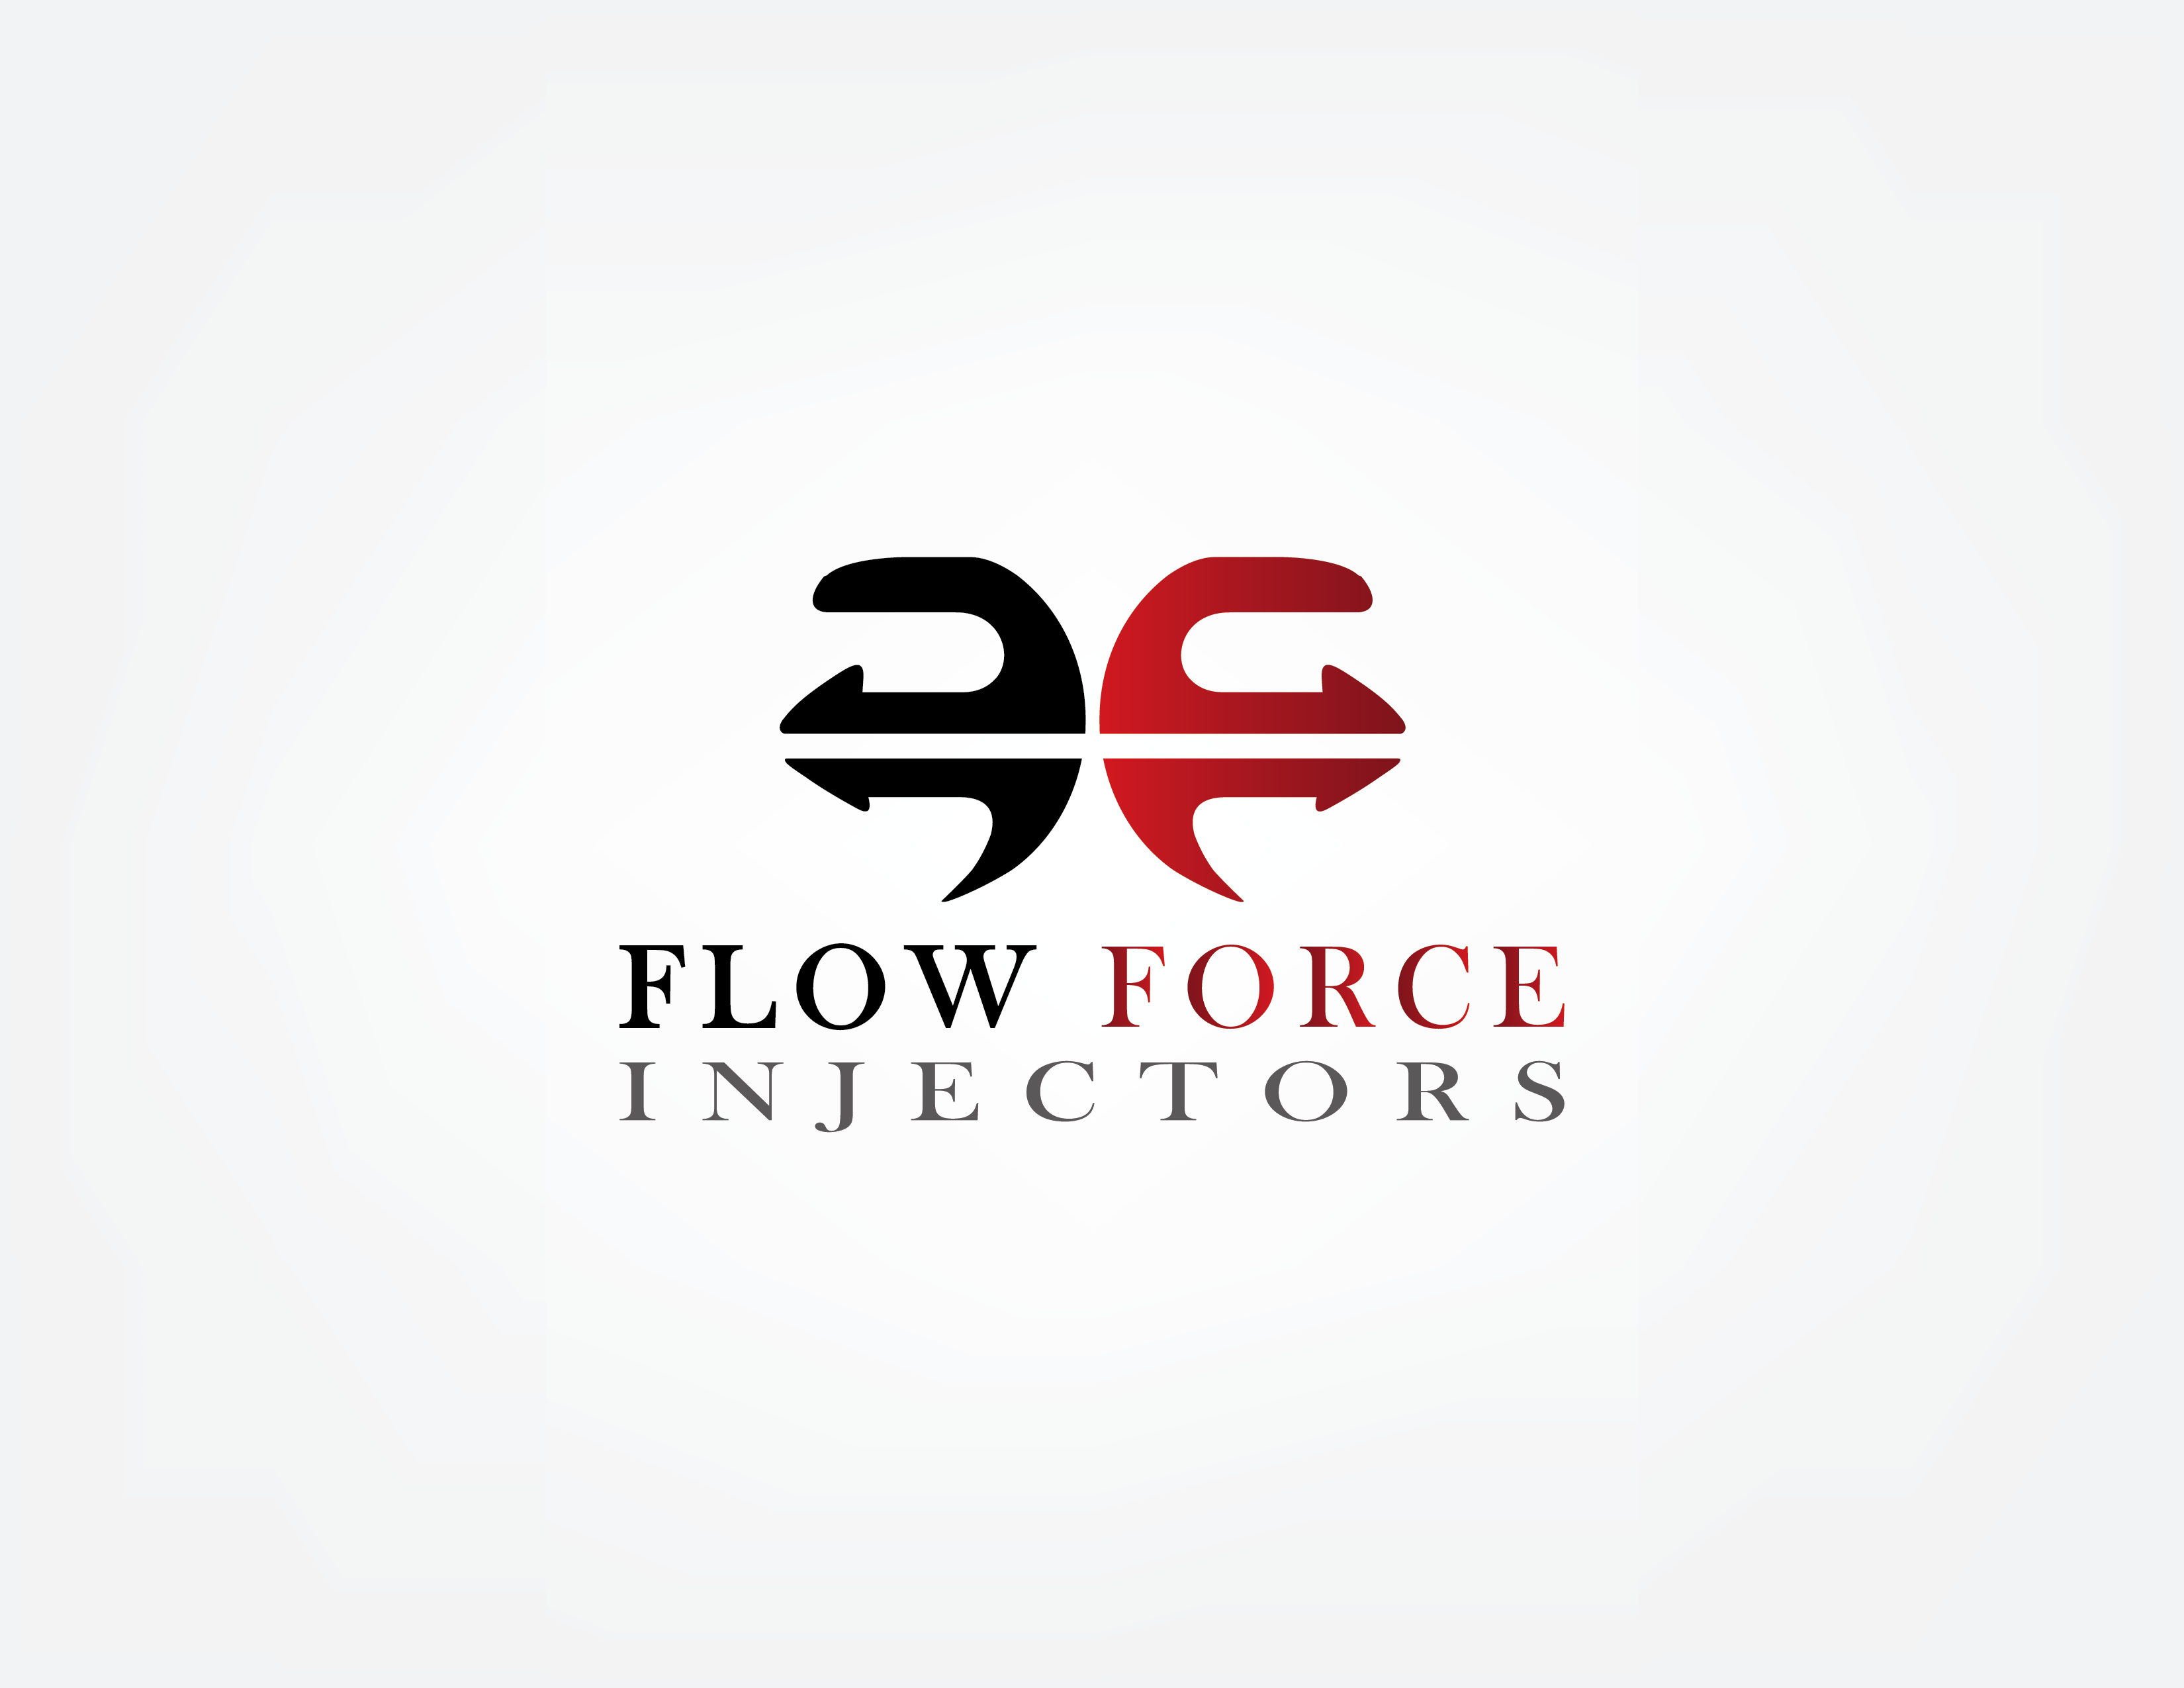 Logo Design by Irfan Ali - Entry No. 173 in the Logo Design Contest Fun Logo Design for Flow Force Injectors.